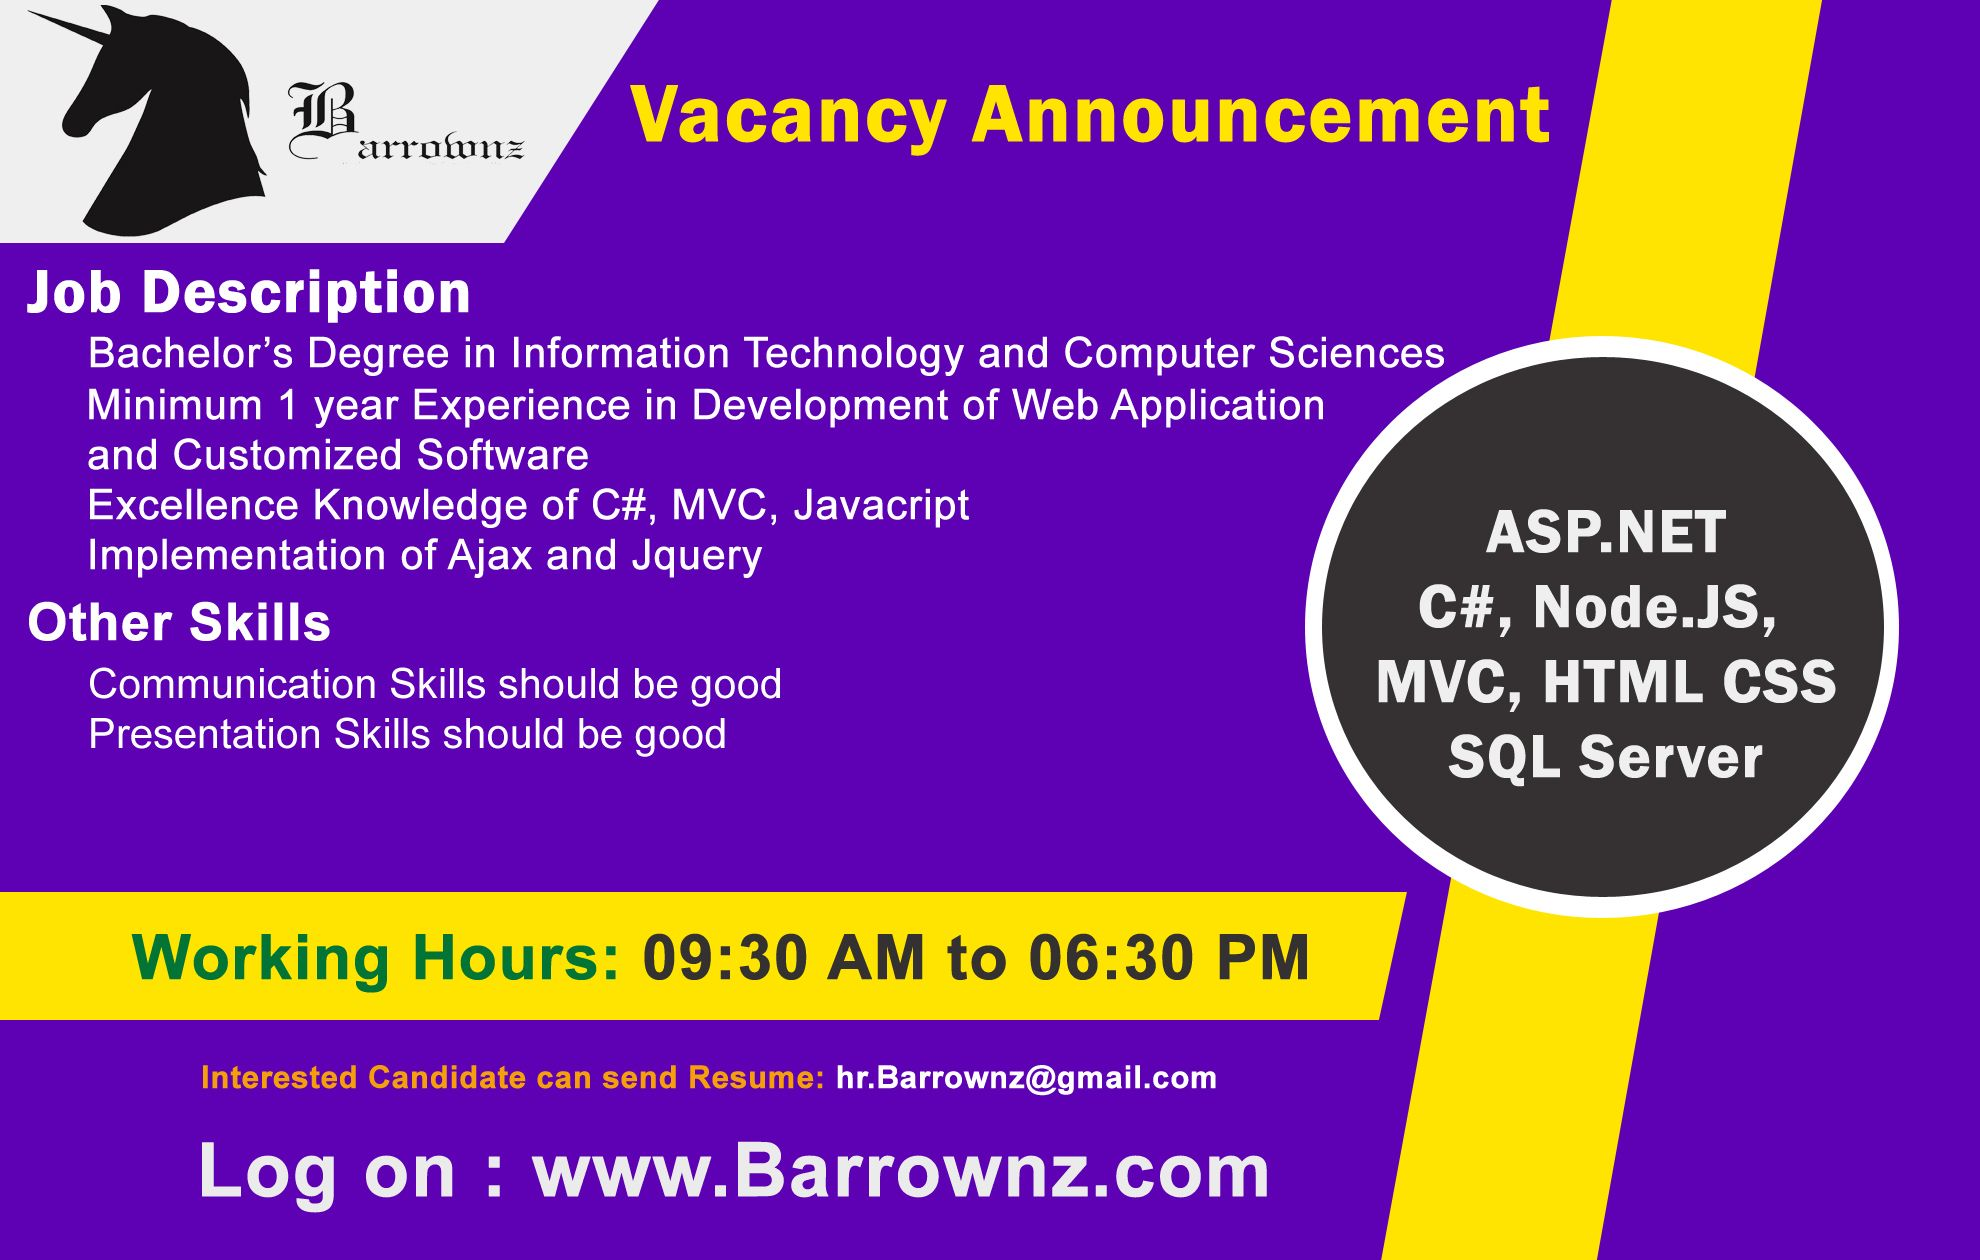 Vacancies at Barrownz Group. Interested Candidates can